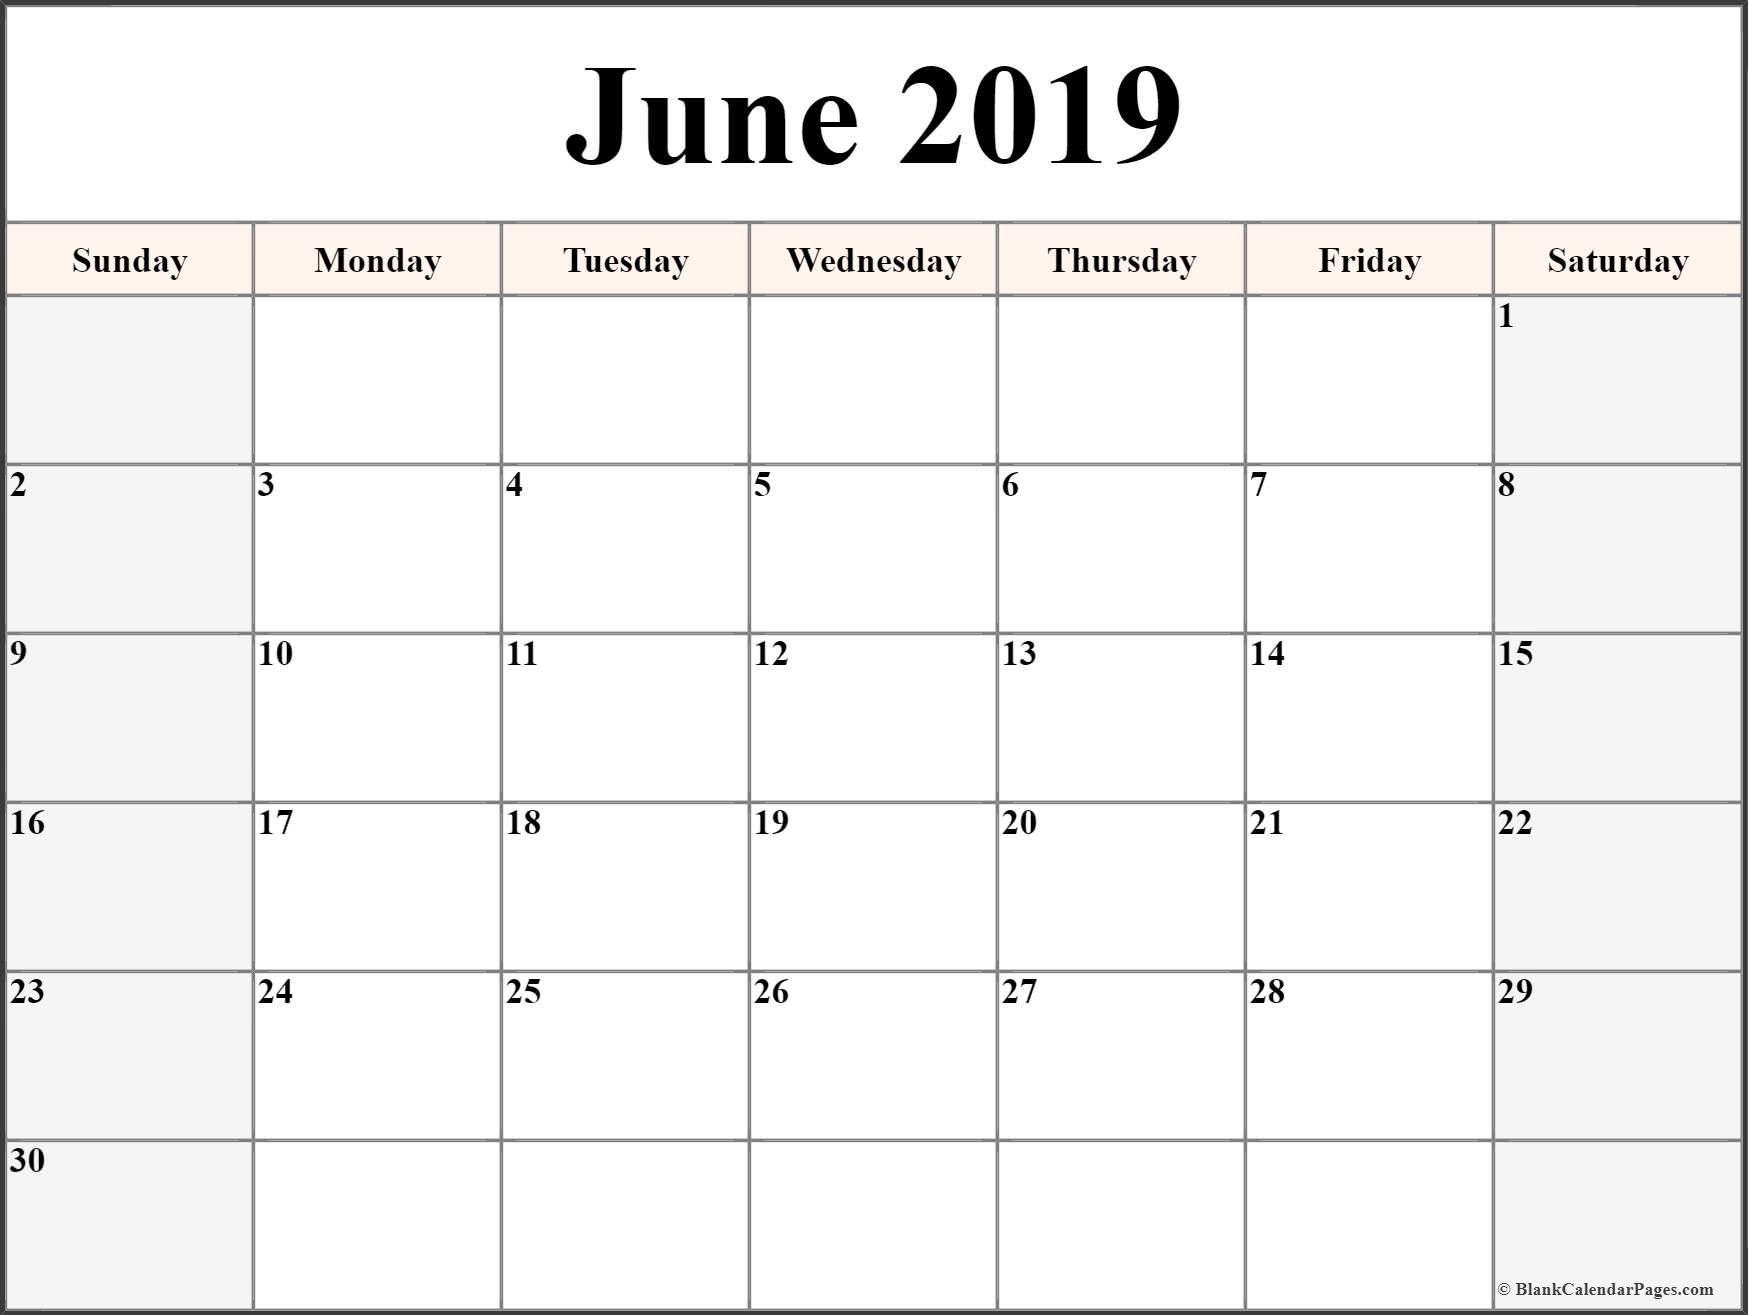 June 2019 Calendar | Free Printable Monthly Calendars with Large Printable Blank Calendar Pages